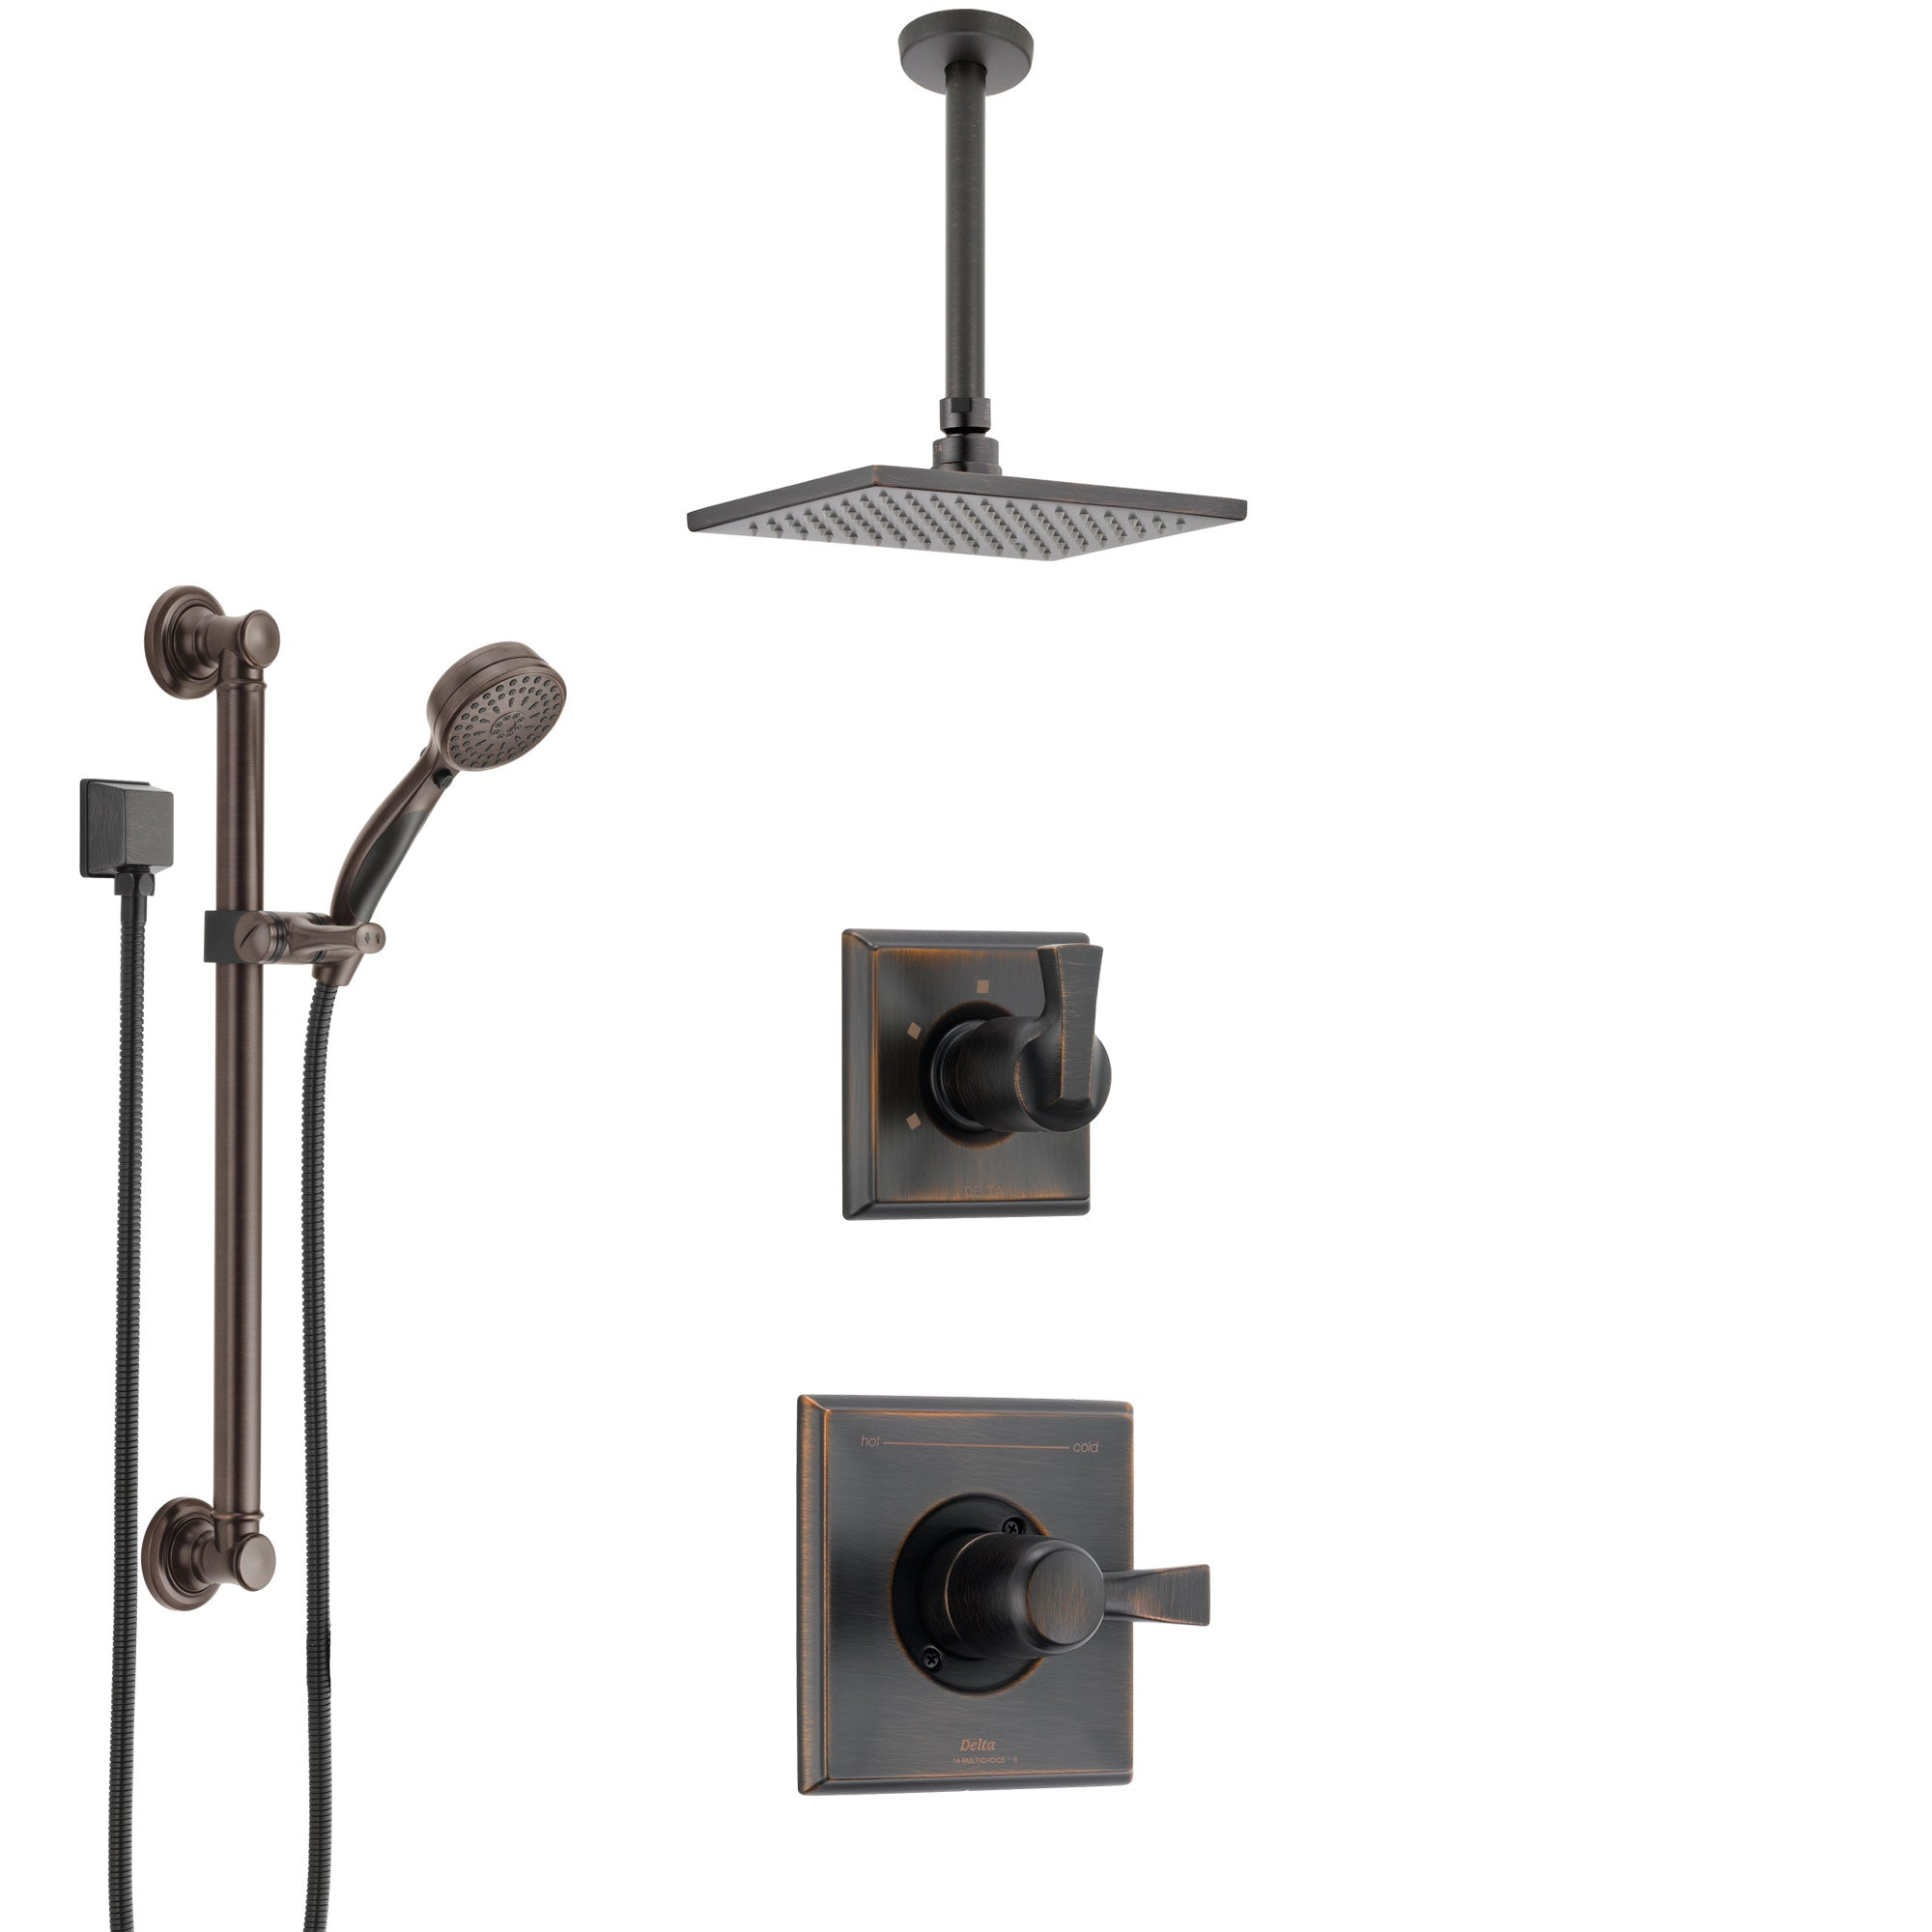 Delta Dryden Venetian Bronze Shower System with Control Handle, 3-Setting Diverter, Ceiling Mount Showerhead, and Hand Shower with Grab Bar SS1451RB1